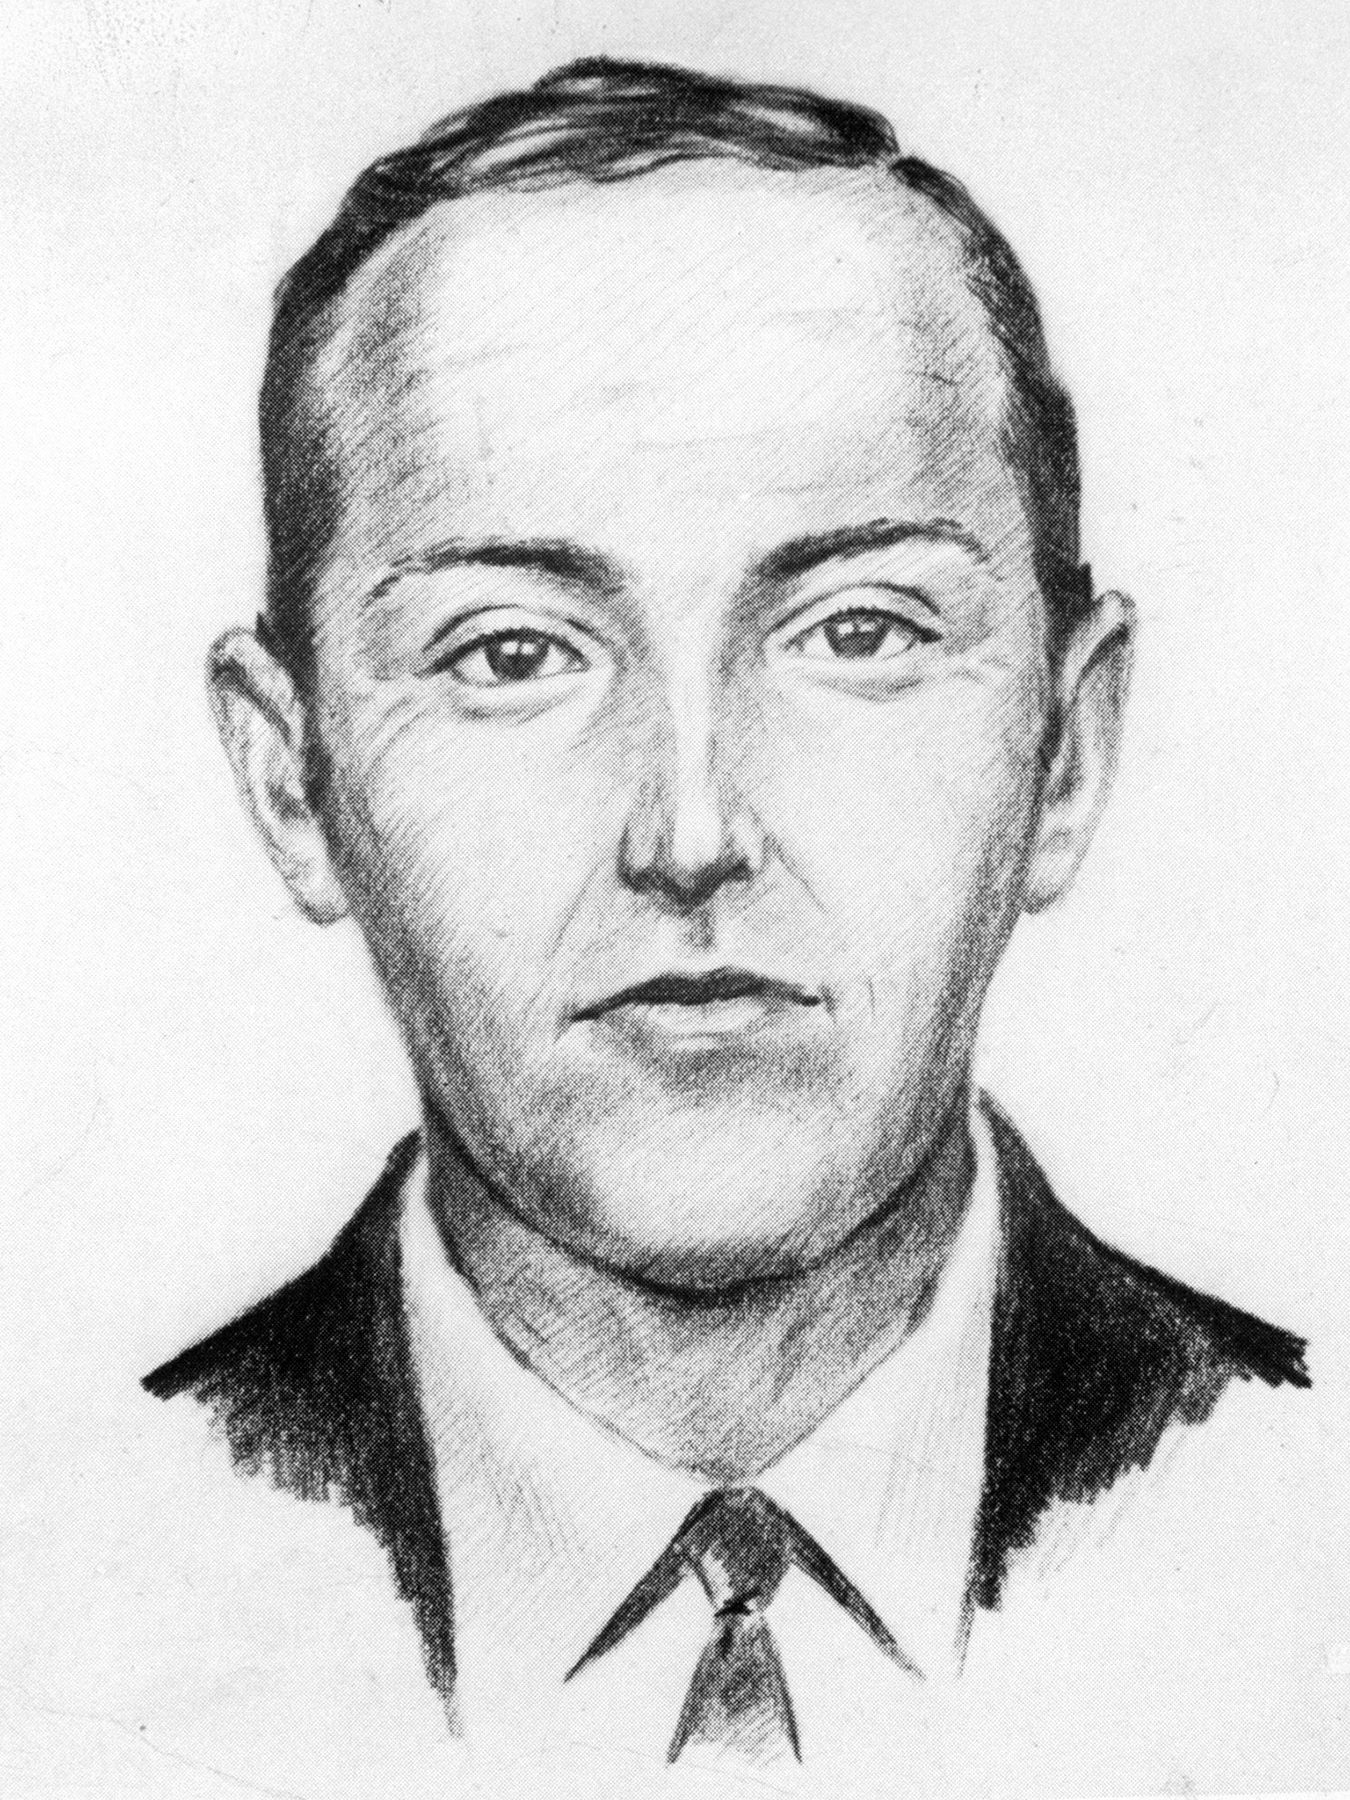 FBI sketch of hijacker D.B. Cooper who commandeered a Northwest Airlines jet, parachuted out over the forests of Washington State w. $200, 000 (obtained from a bomb threat) & simply disappeared. (Photo by Time Life Pictures/Fbi/The LIFE Picture Collection via Getty Images)